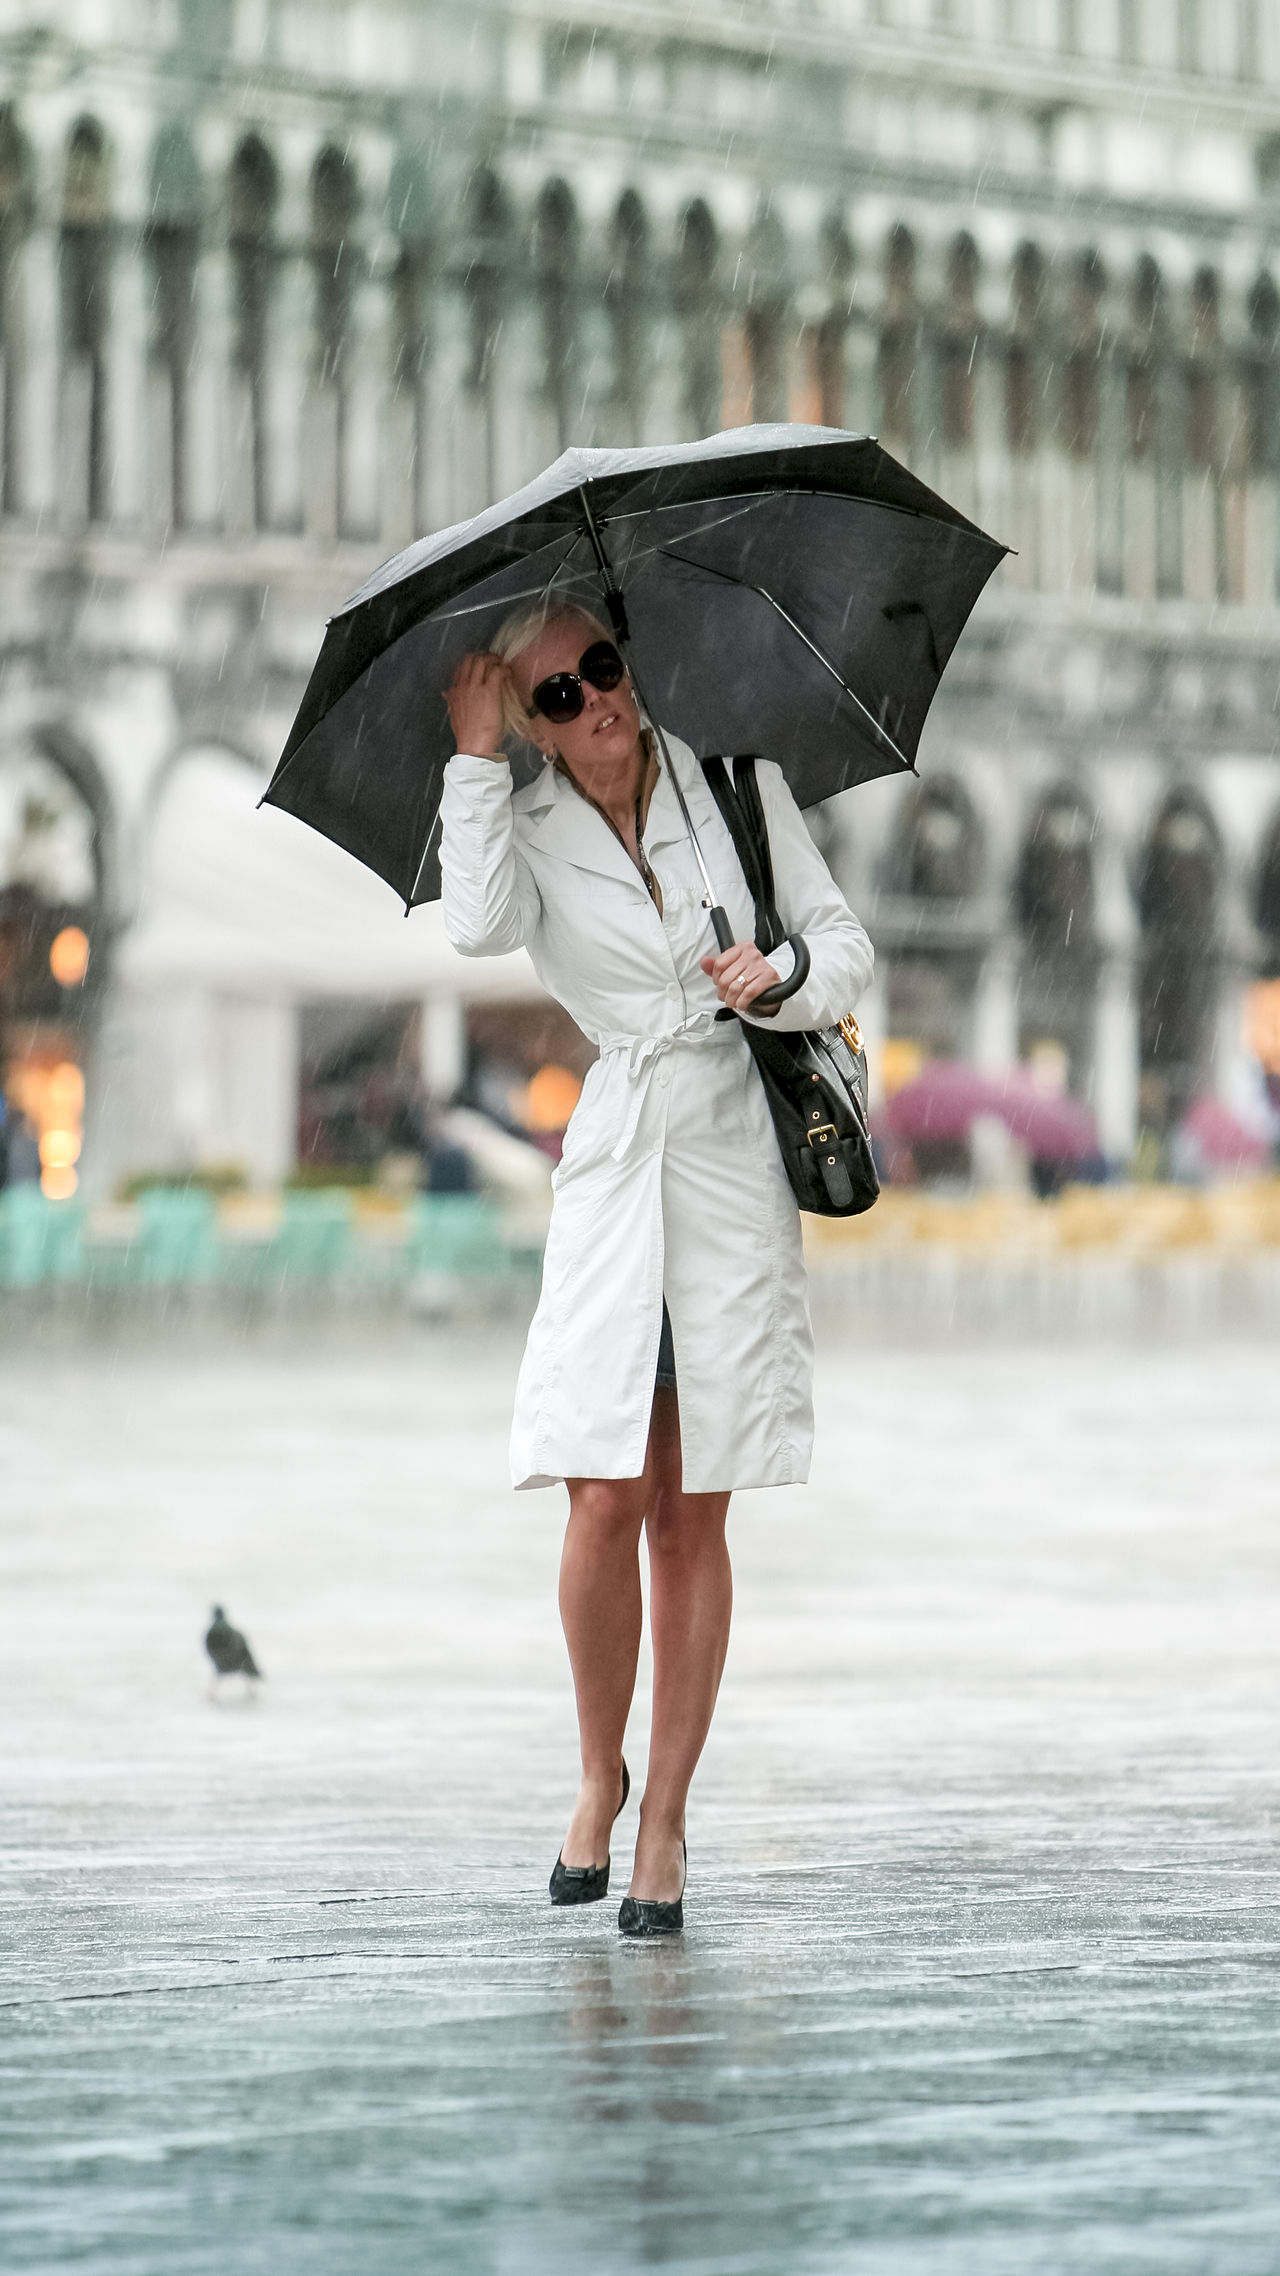 elegant dressed girl walks alone in the peak tourist season the center of St. Mark's Square Venice under the umbrella of rain In The Peak Tourist Season Adult Center Of St. Mark's Square Venice Day Dressed Elegant Girl Walks Alone One Person One Woman Only Outdoors People Person Rain Rain Smiling Umbrella Vertical Water Minimalist Architecture The City Light Women Around The World Neighborhood Map Live For The Story